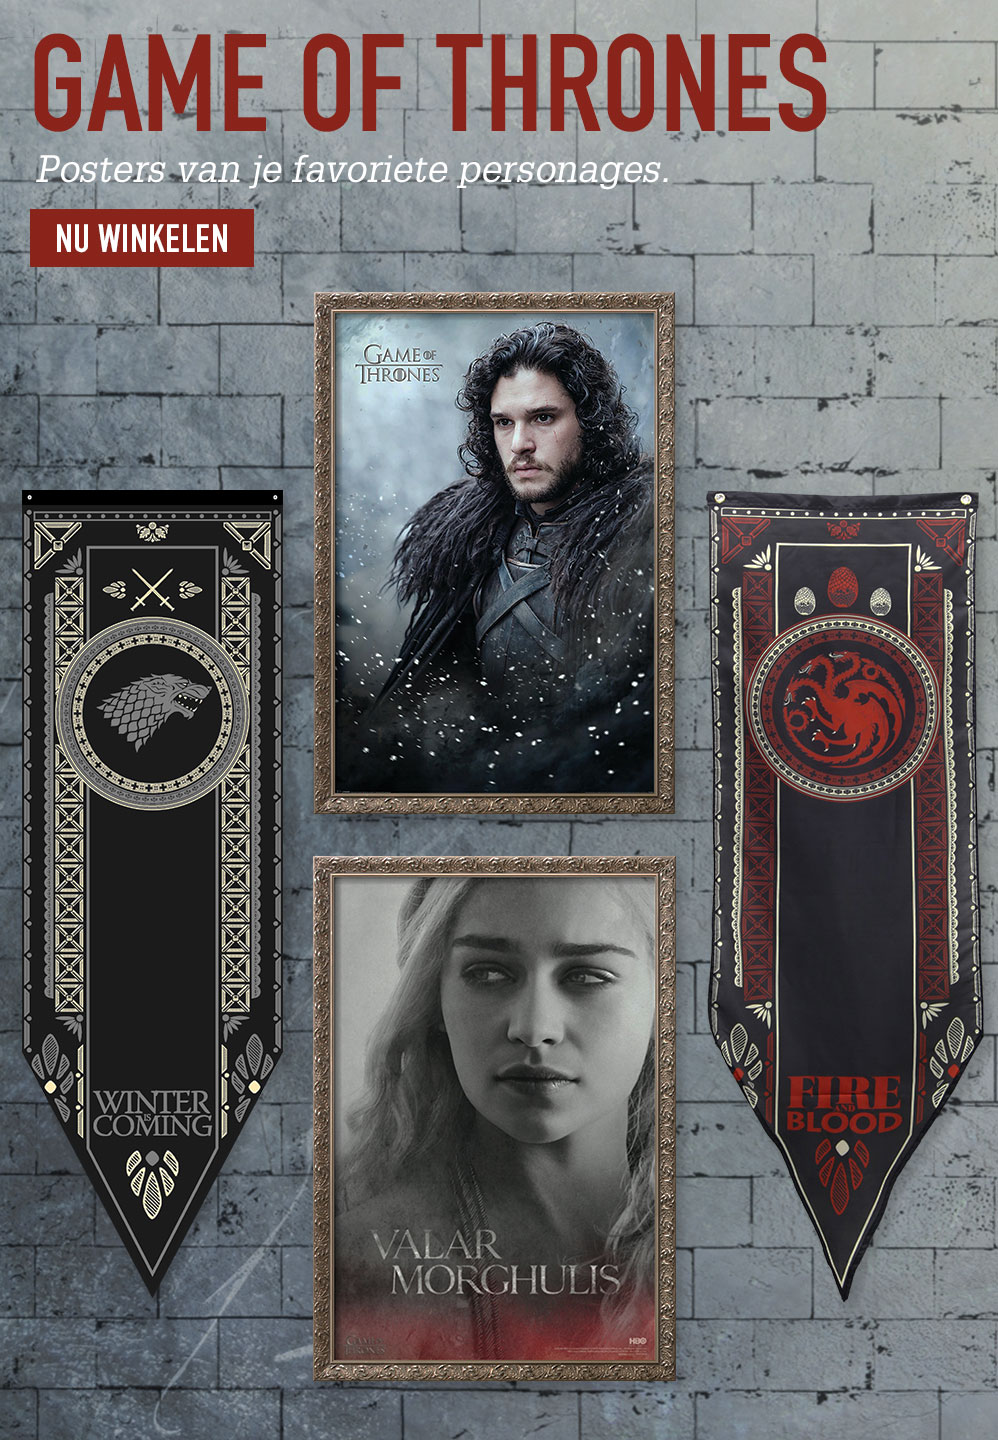 GAME OF THRONES. Posters van je favoriete personages. Nu winkelen